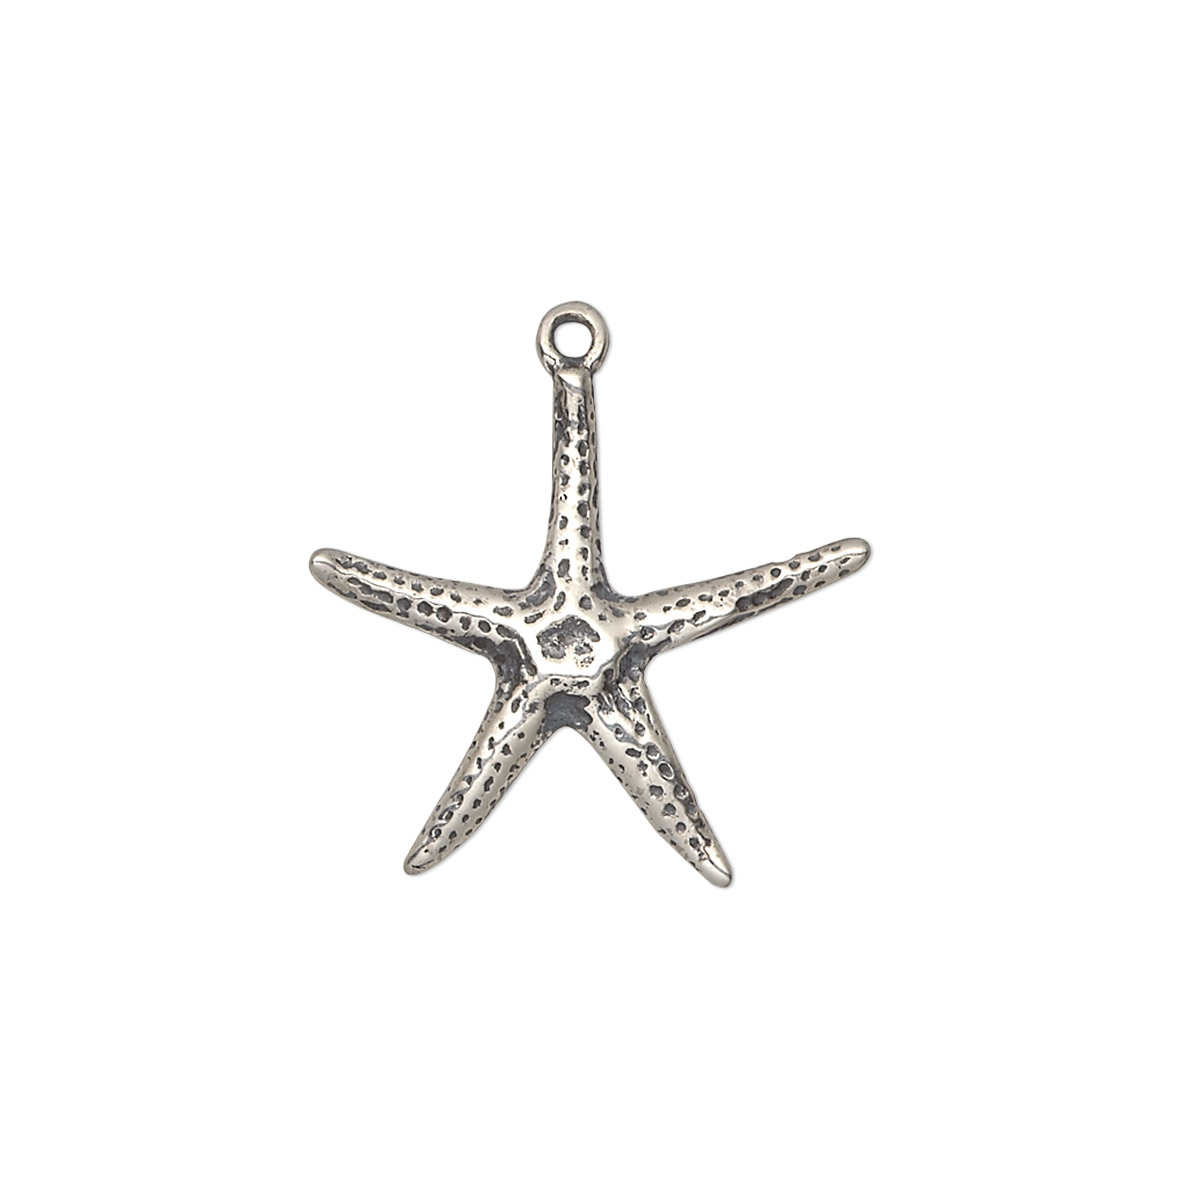 Charm  Sterling Silver  20x19mm Starfish  Sold